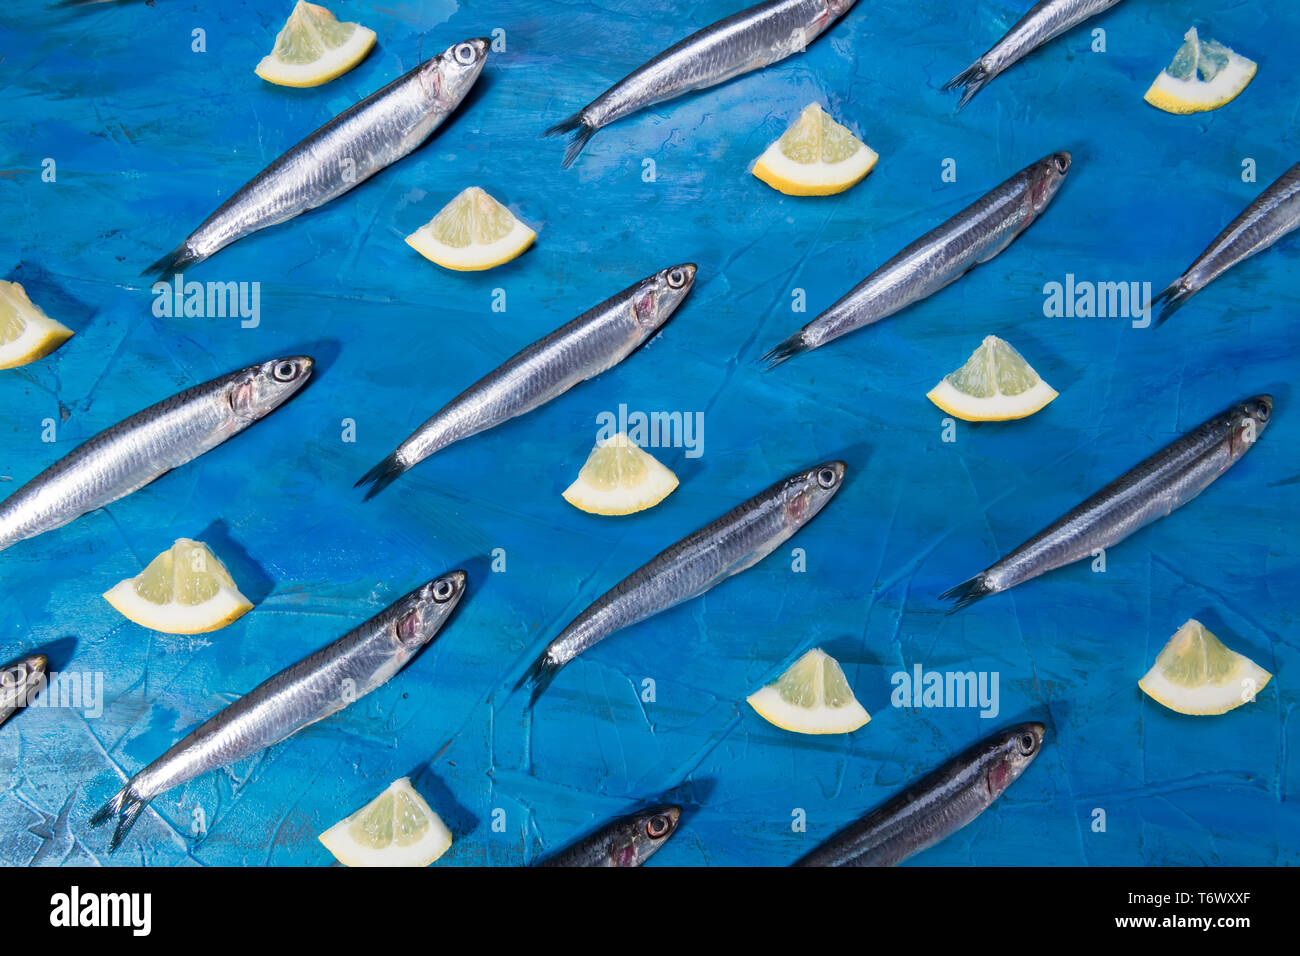 Fish pattern. Anchovies with slice of lemon on a black stone on a blue sea background. Fish caught in the Ionian Sea - Stock Image